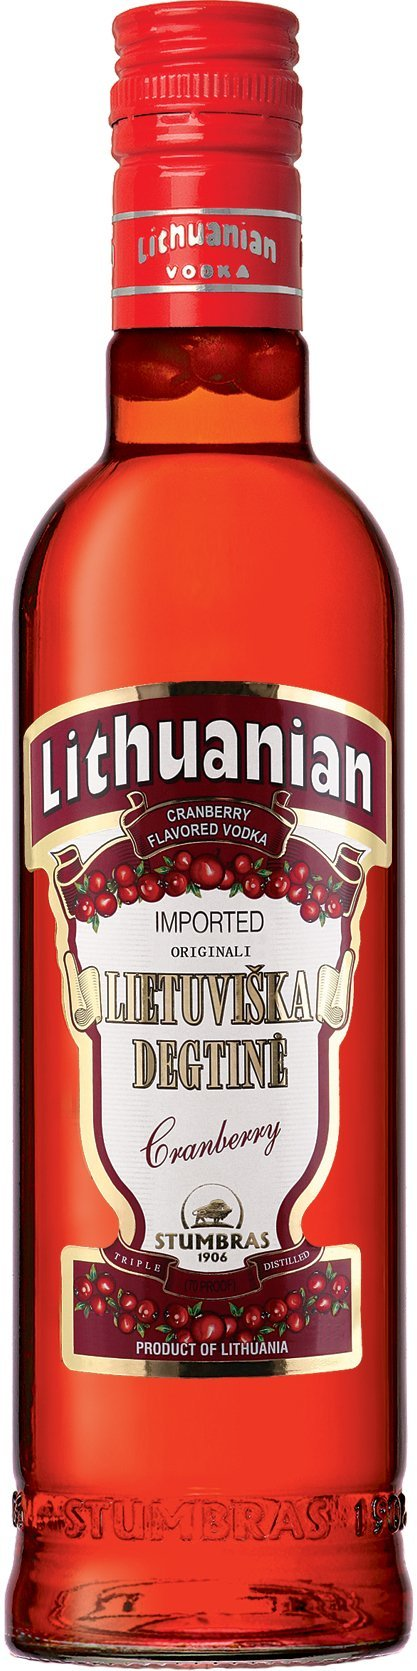 Lithuanian Cranberry Vodka 750ml